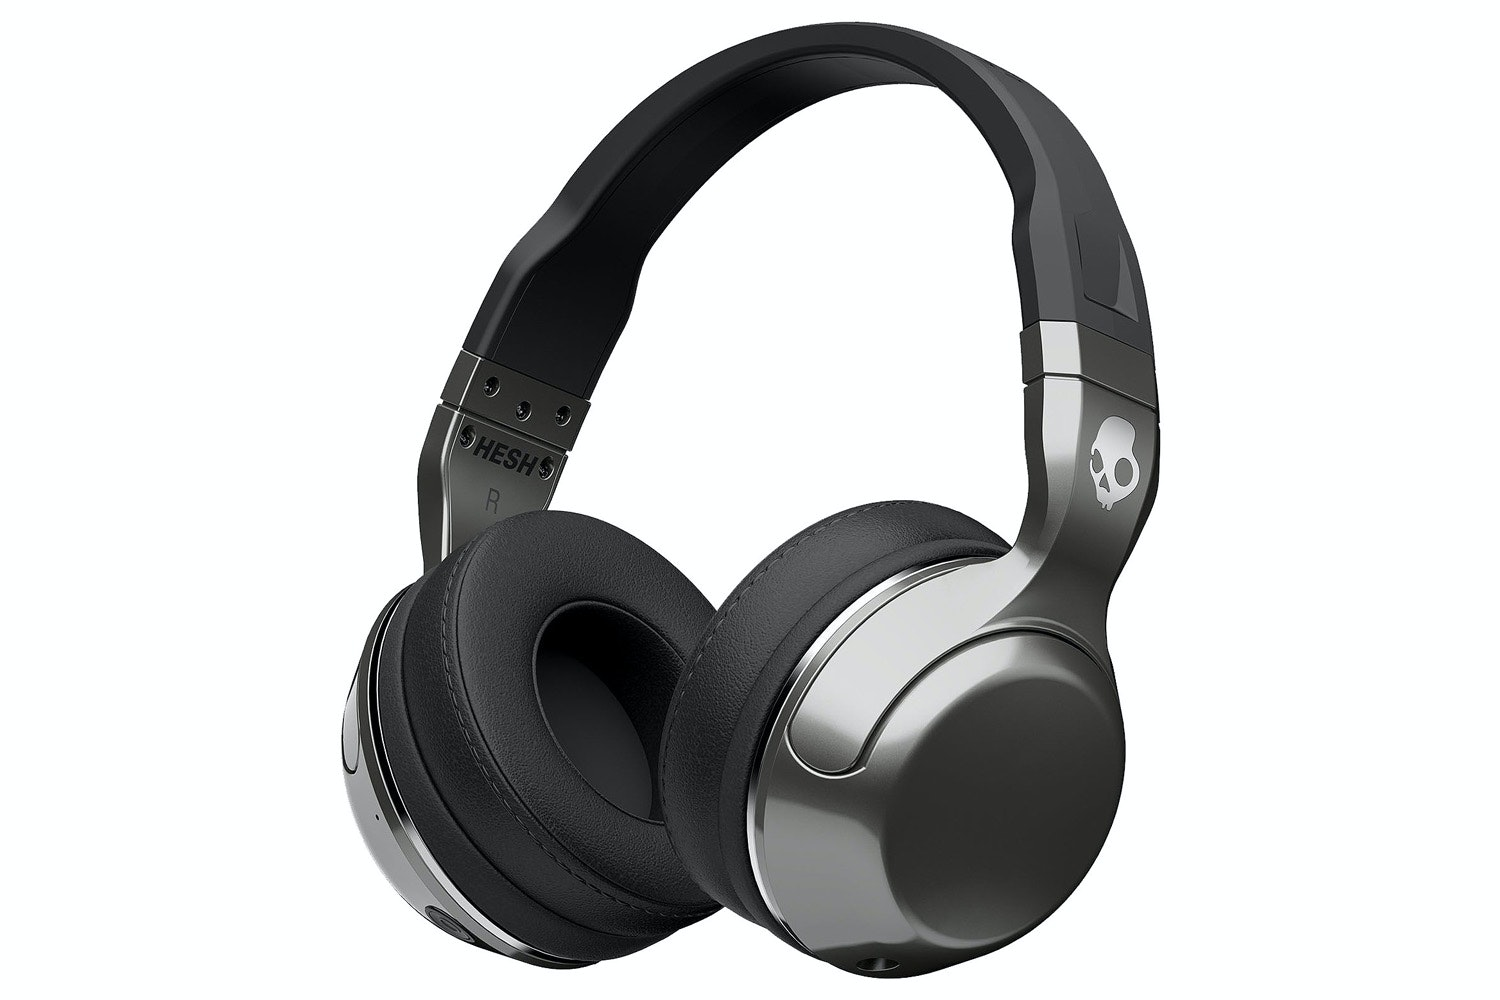 Skullcandy Hesh 2 Bluetooth Wireless Headphones | S6HBHY-516